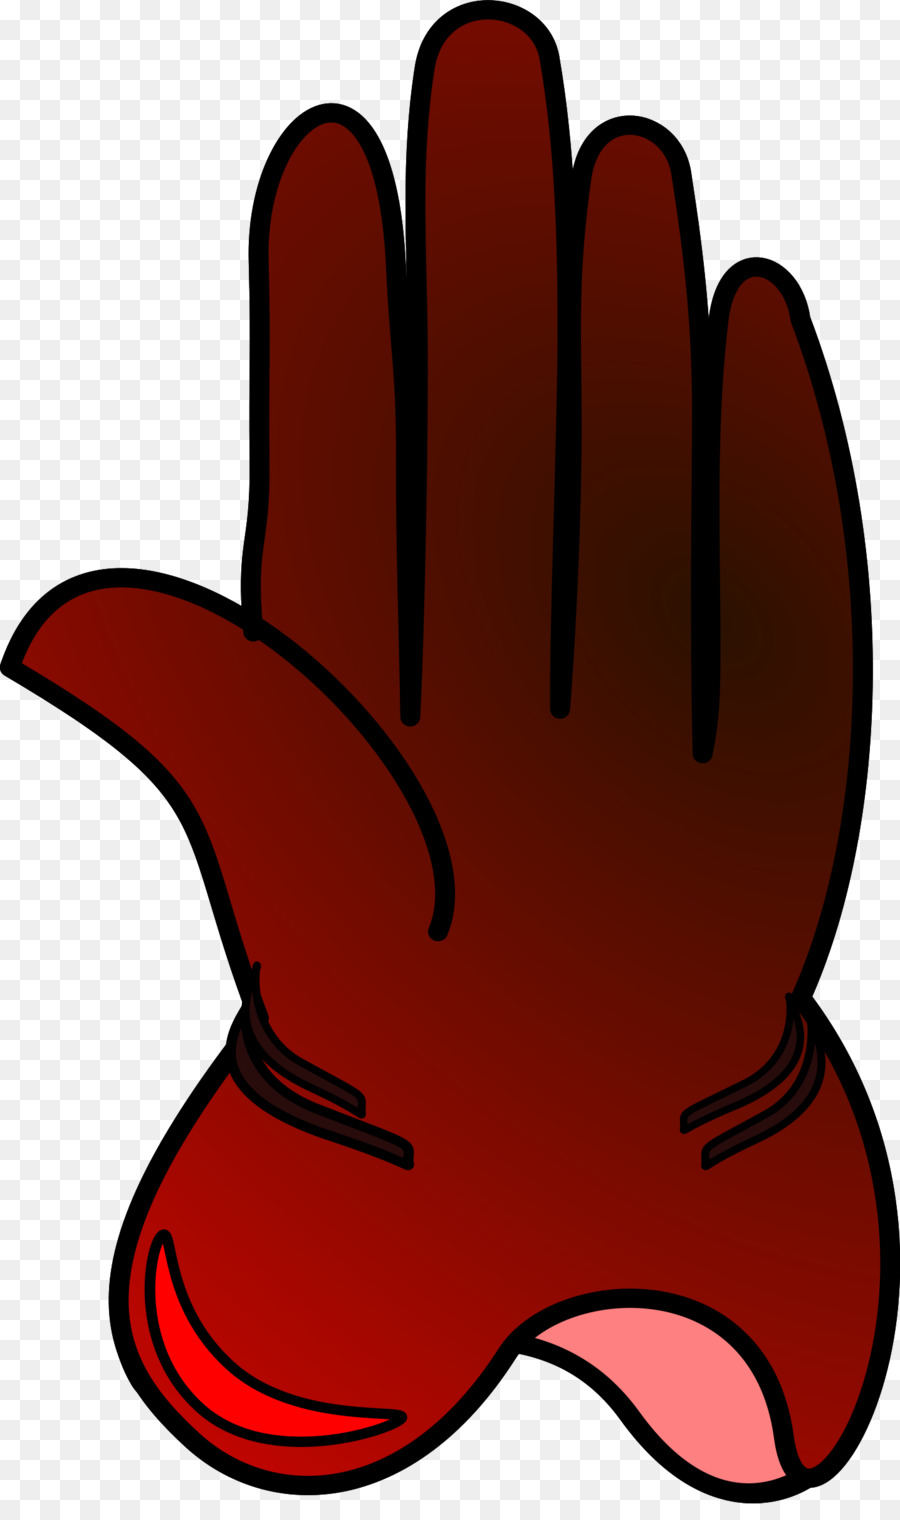 Red glove clipart image library Clothing, Red, Hand, transparent png image & clipart free ... image library